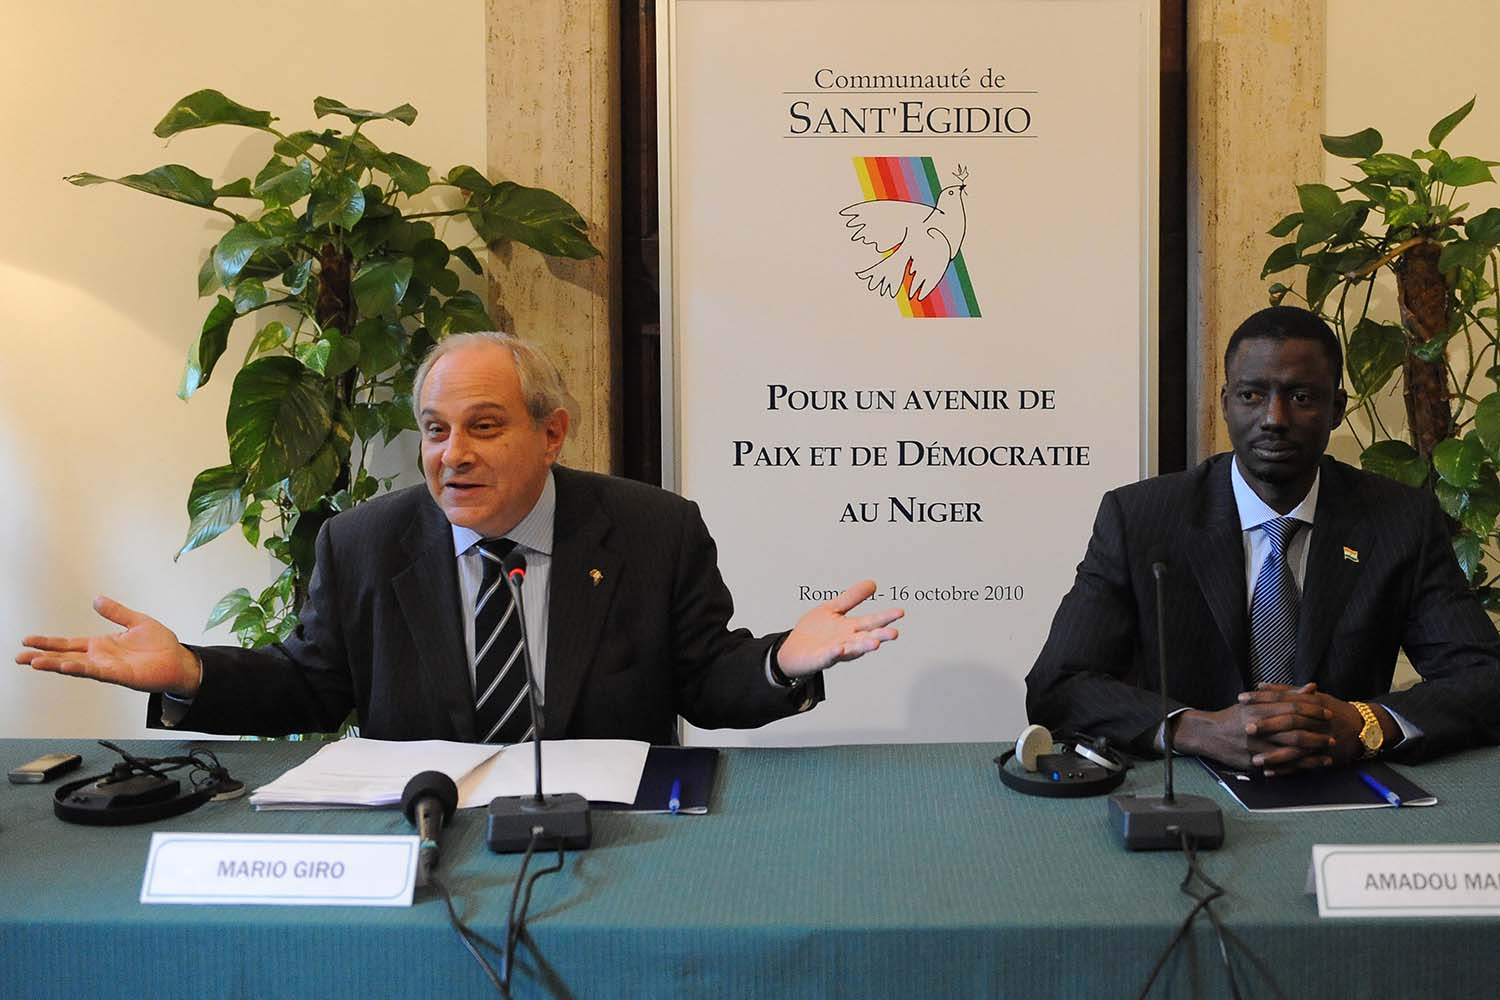 Italy's Mario Giro, left, and Amadou Marou, the leader of the Niger's Consultative Council hold a news conference in Rome on Oct. 15, 2010.